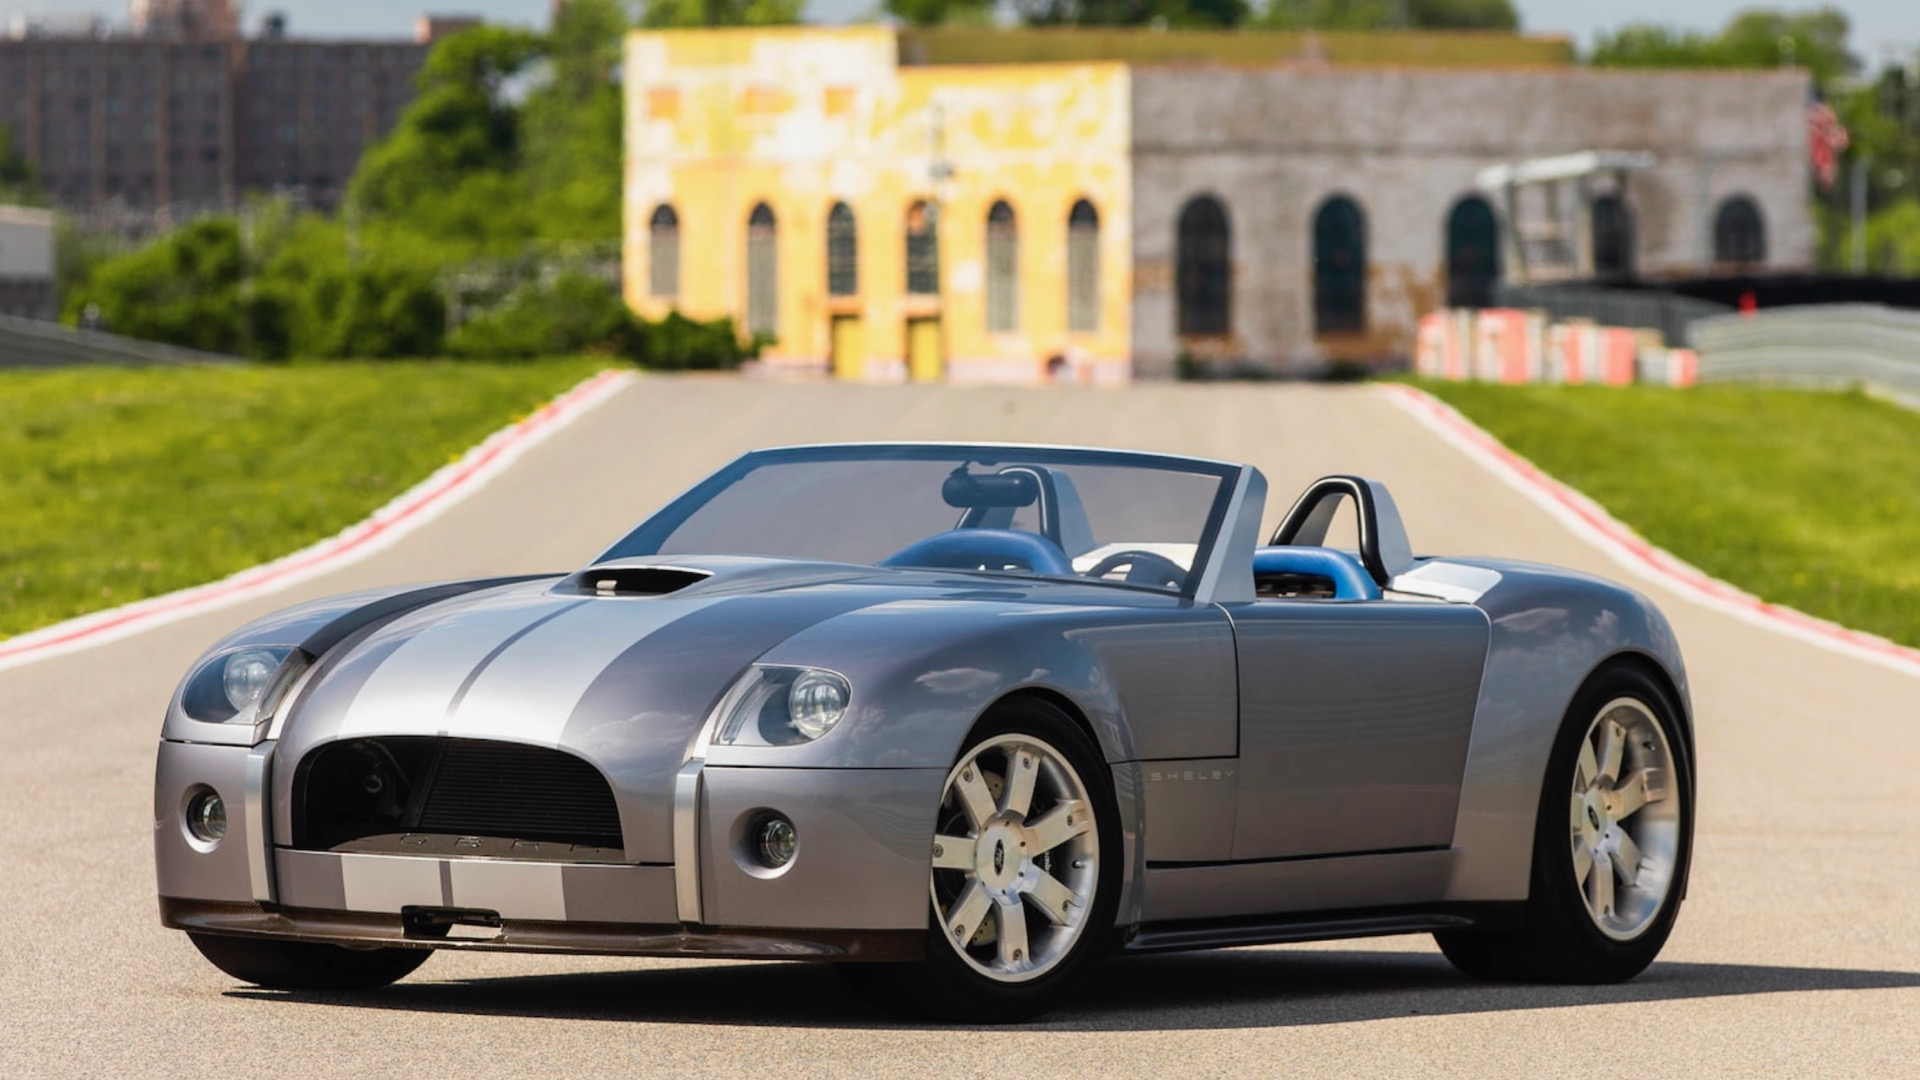 Ford Shelby Cobra concept headed to Monterey auction